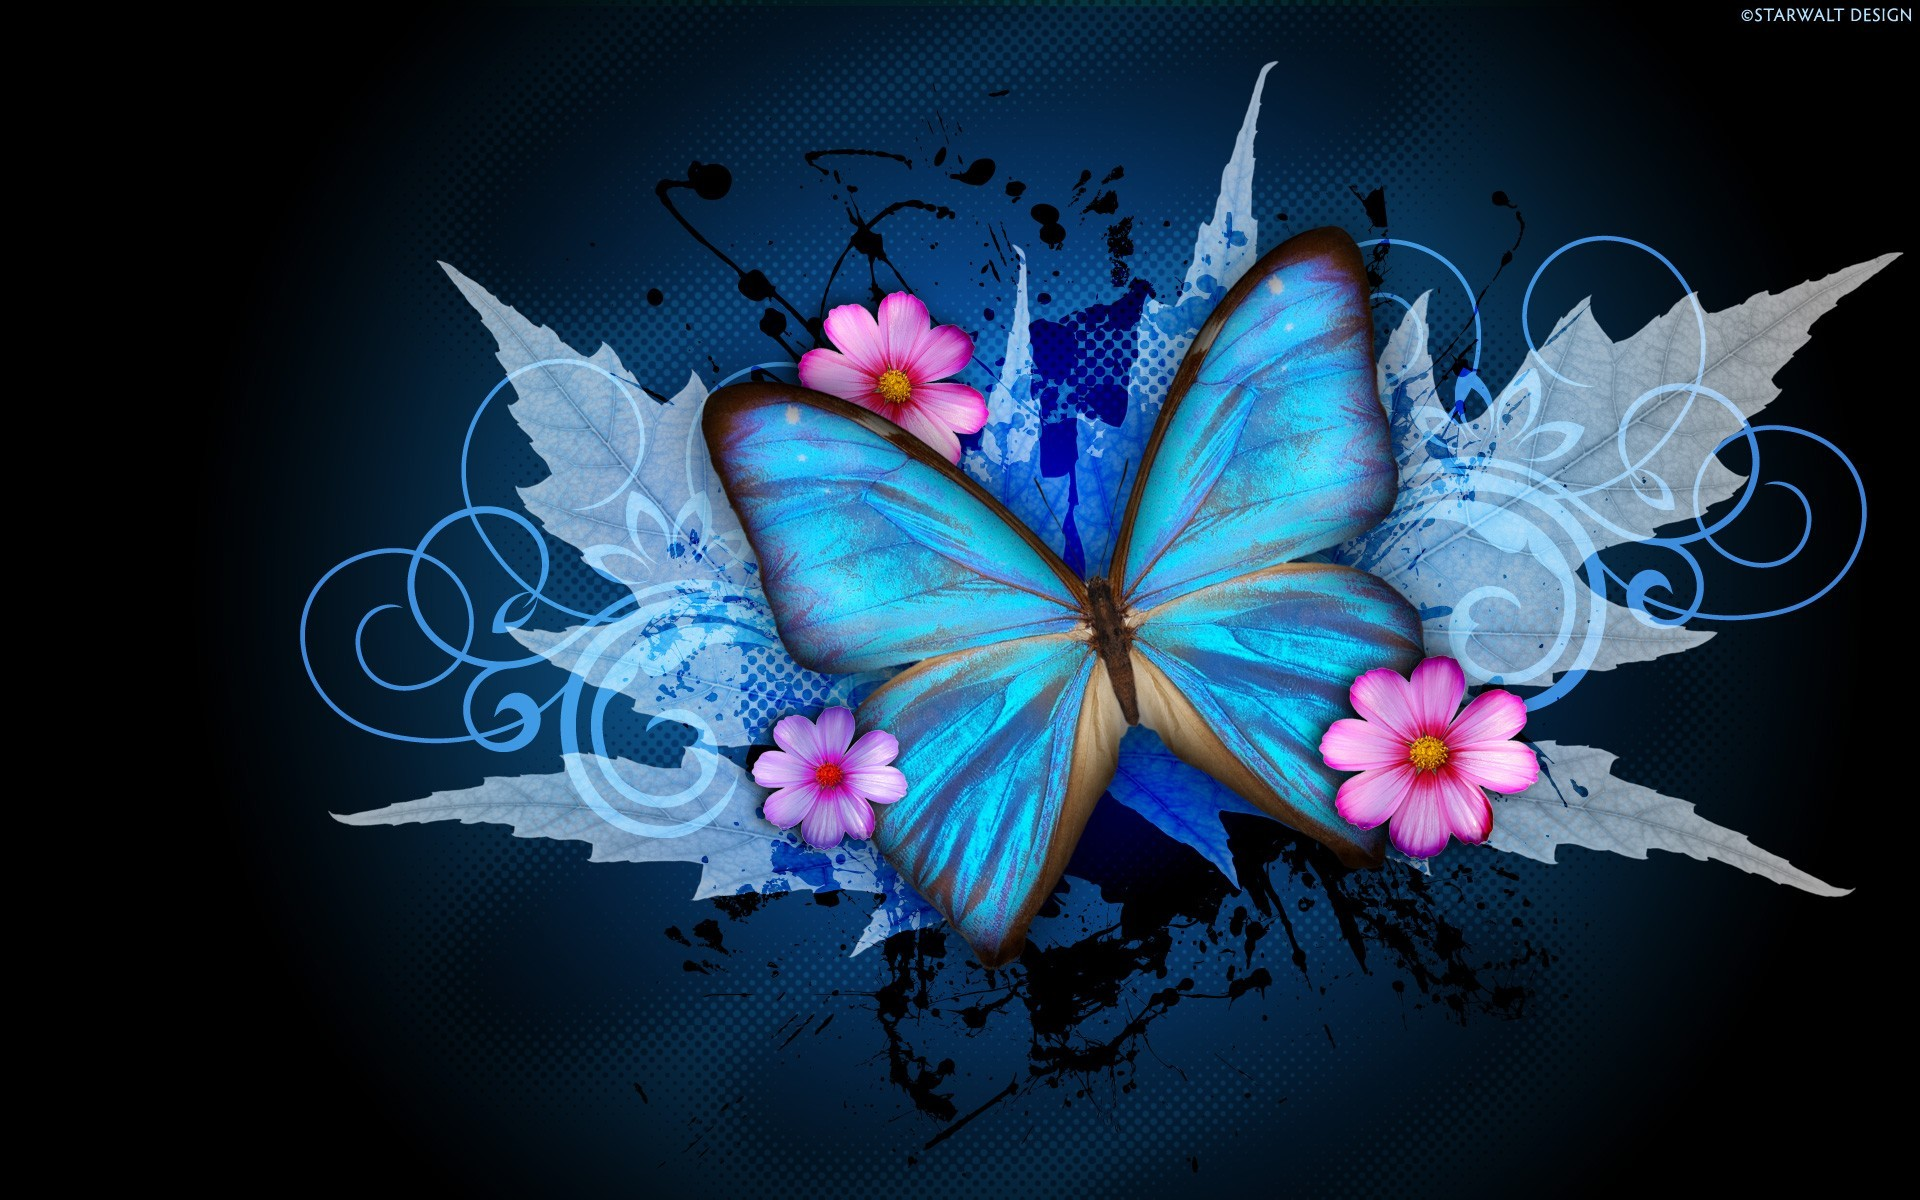 Butterfly Wallpaper 70 images 1920x1200